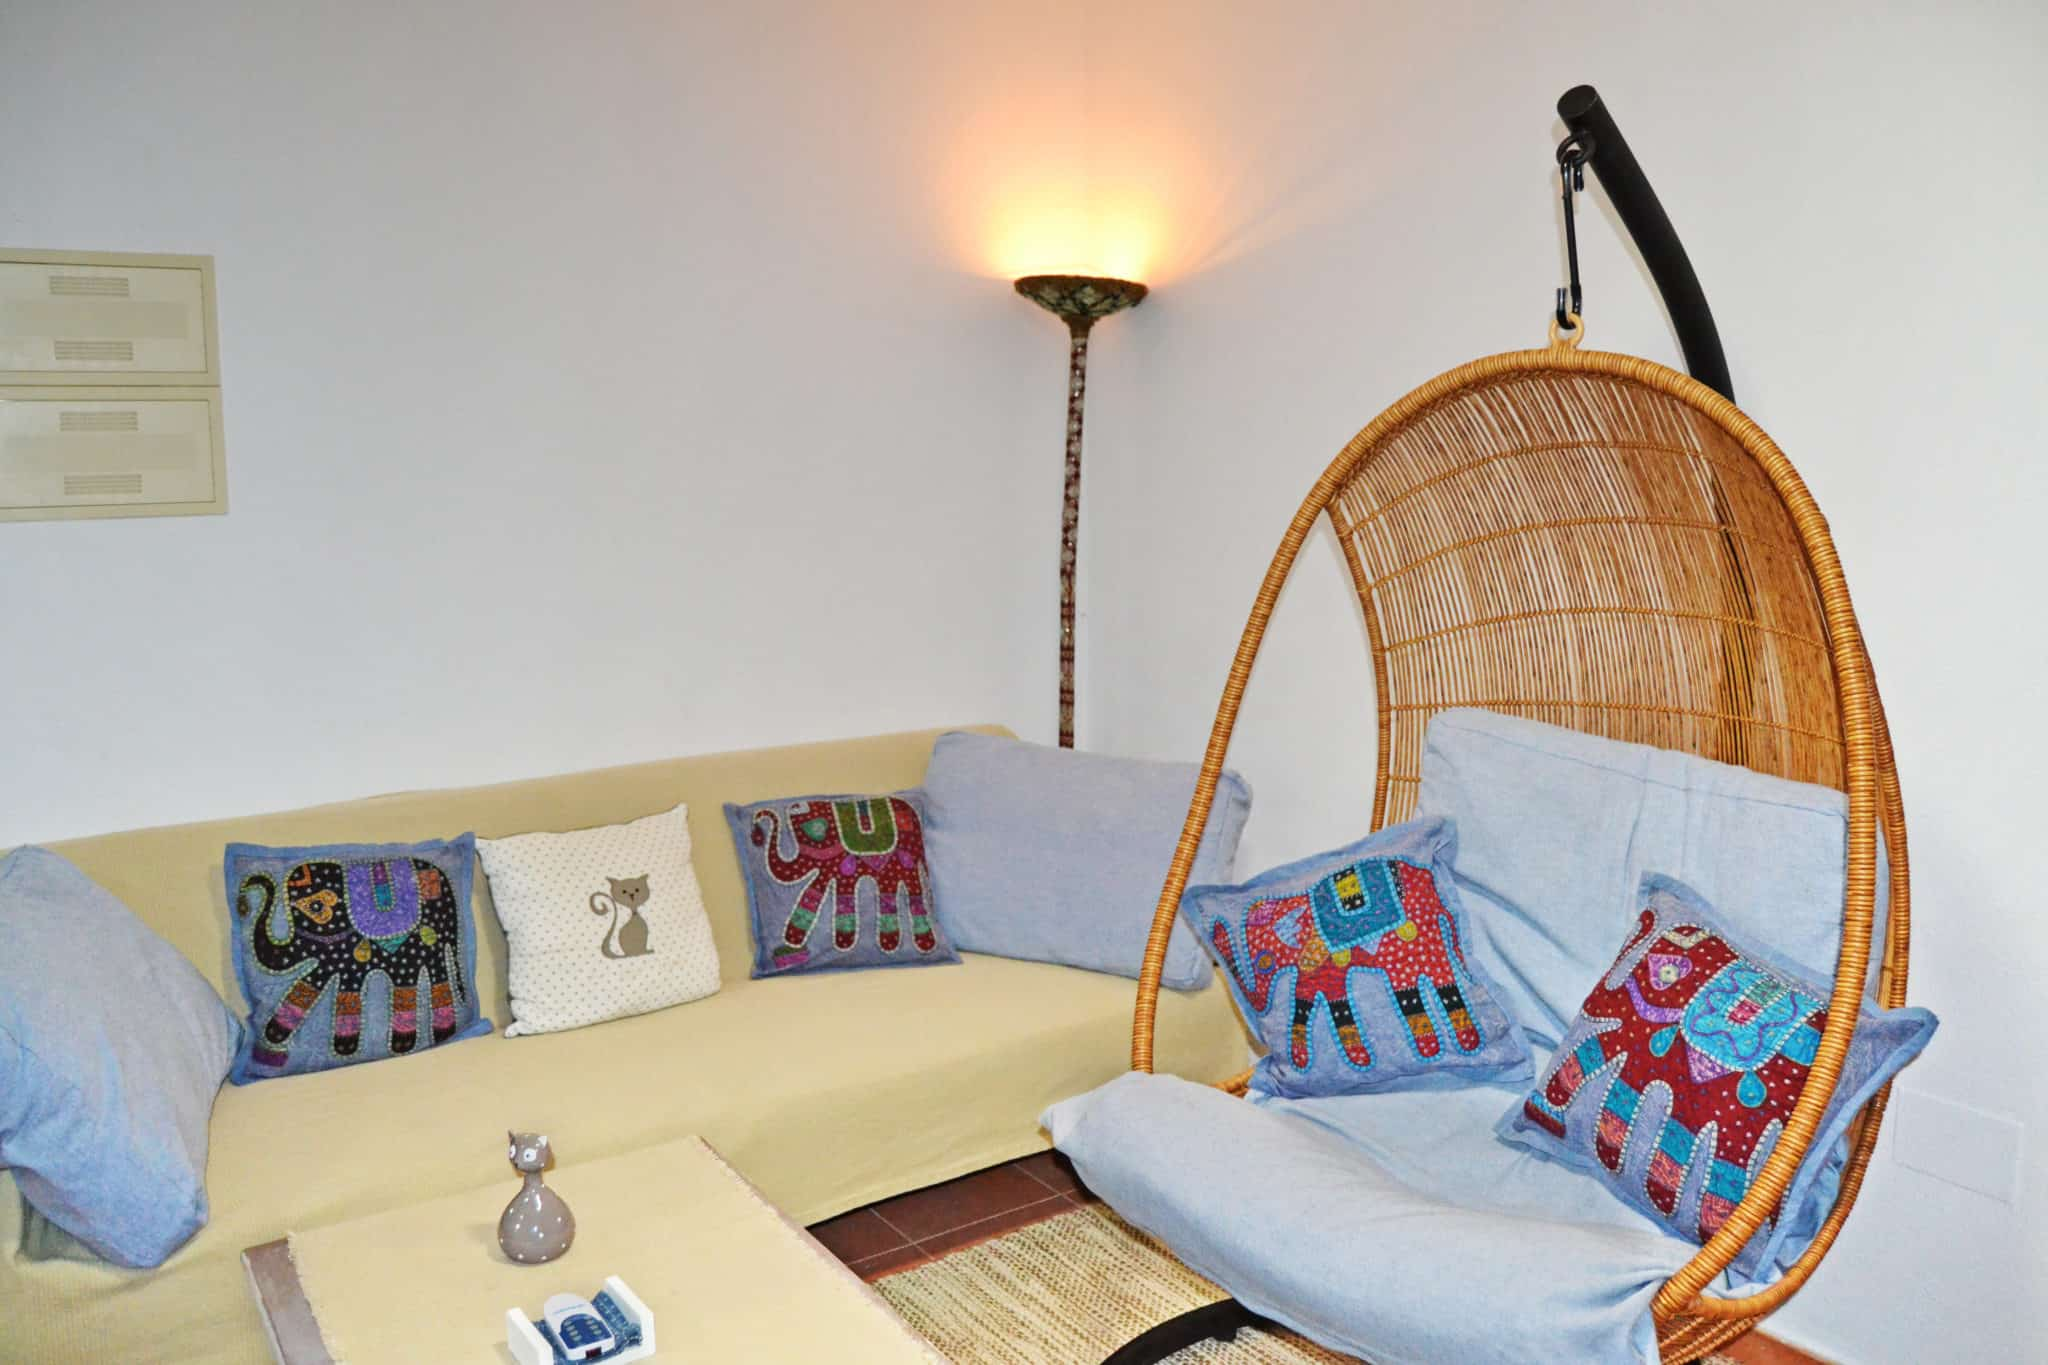 Hanging chair and sofa-bed